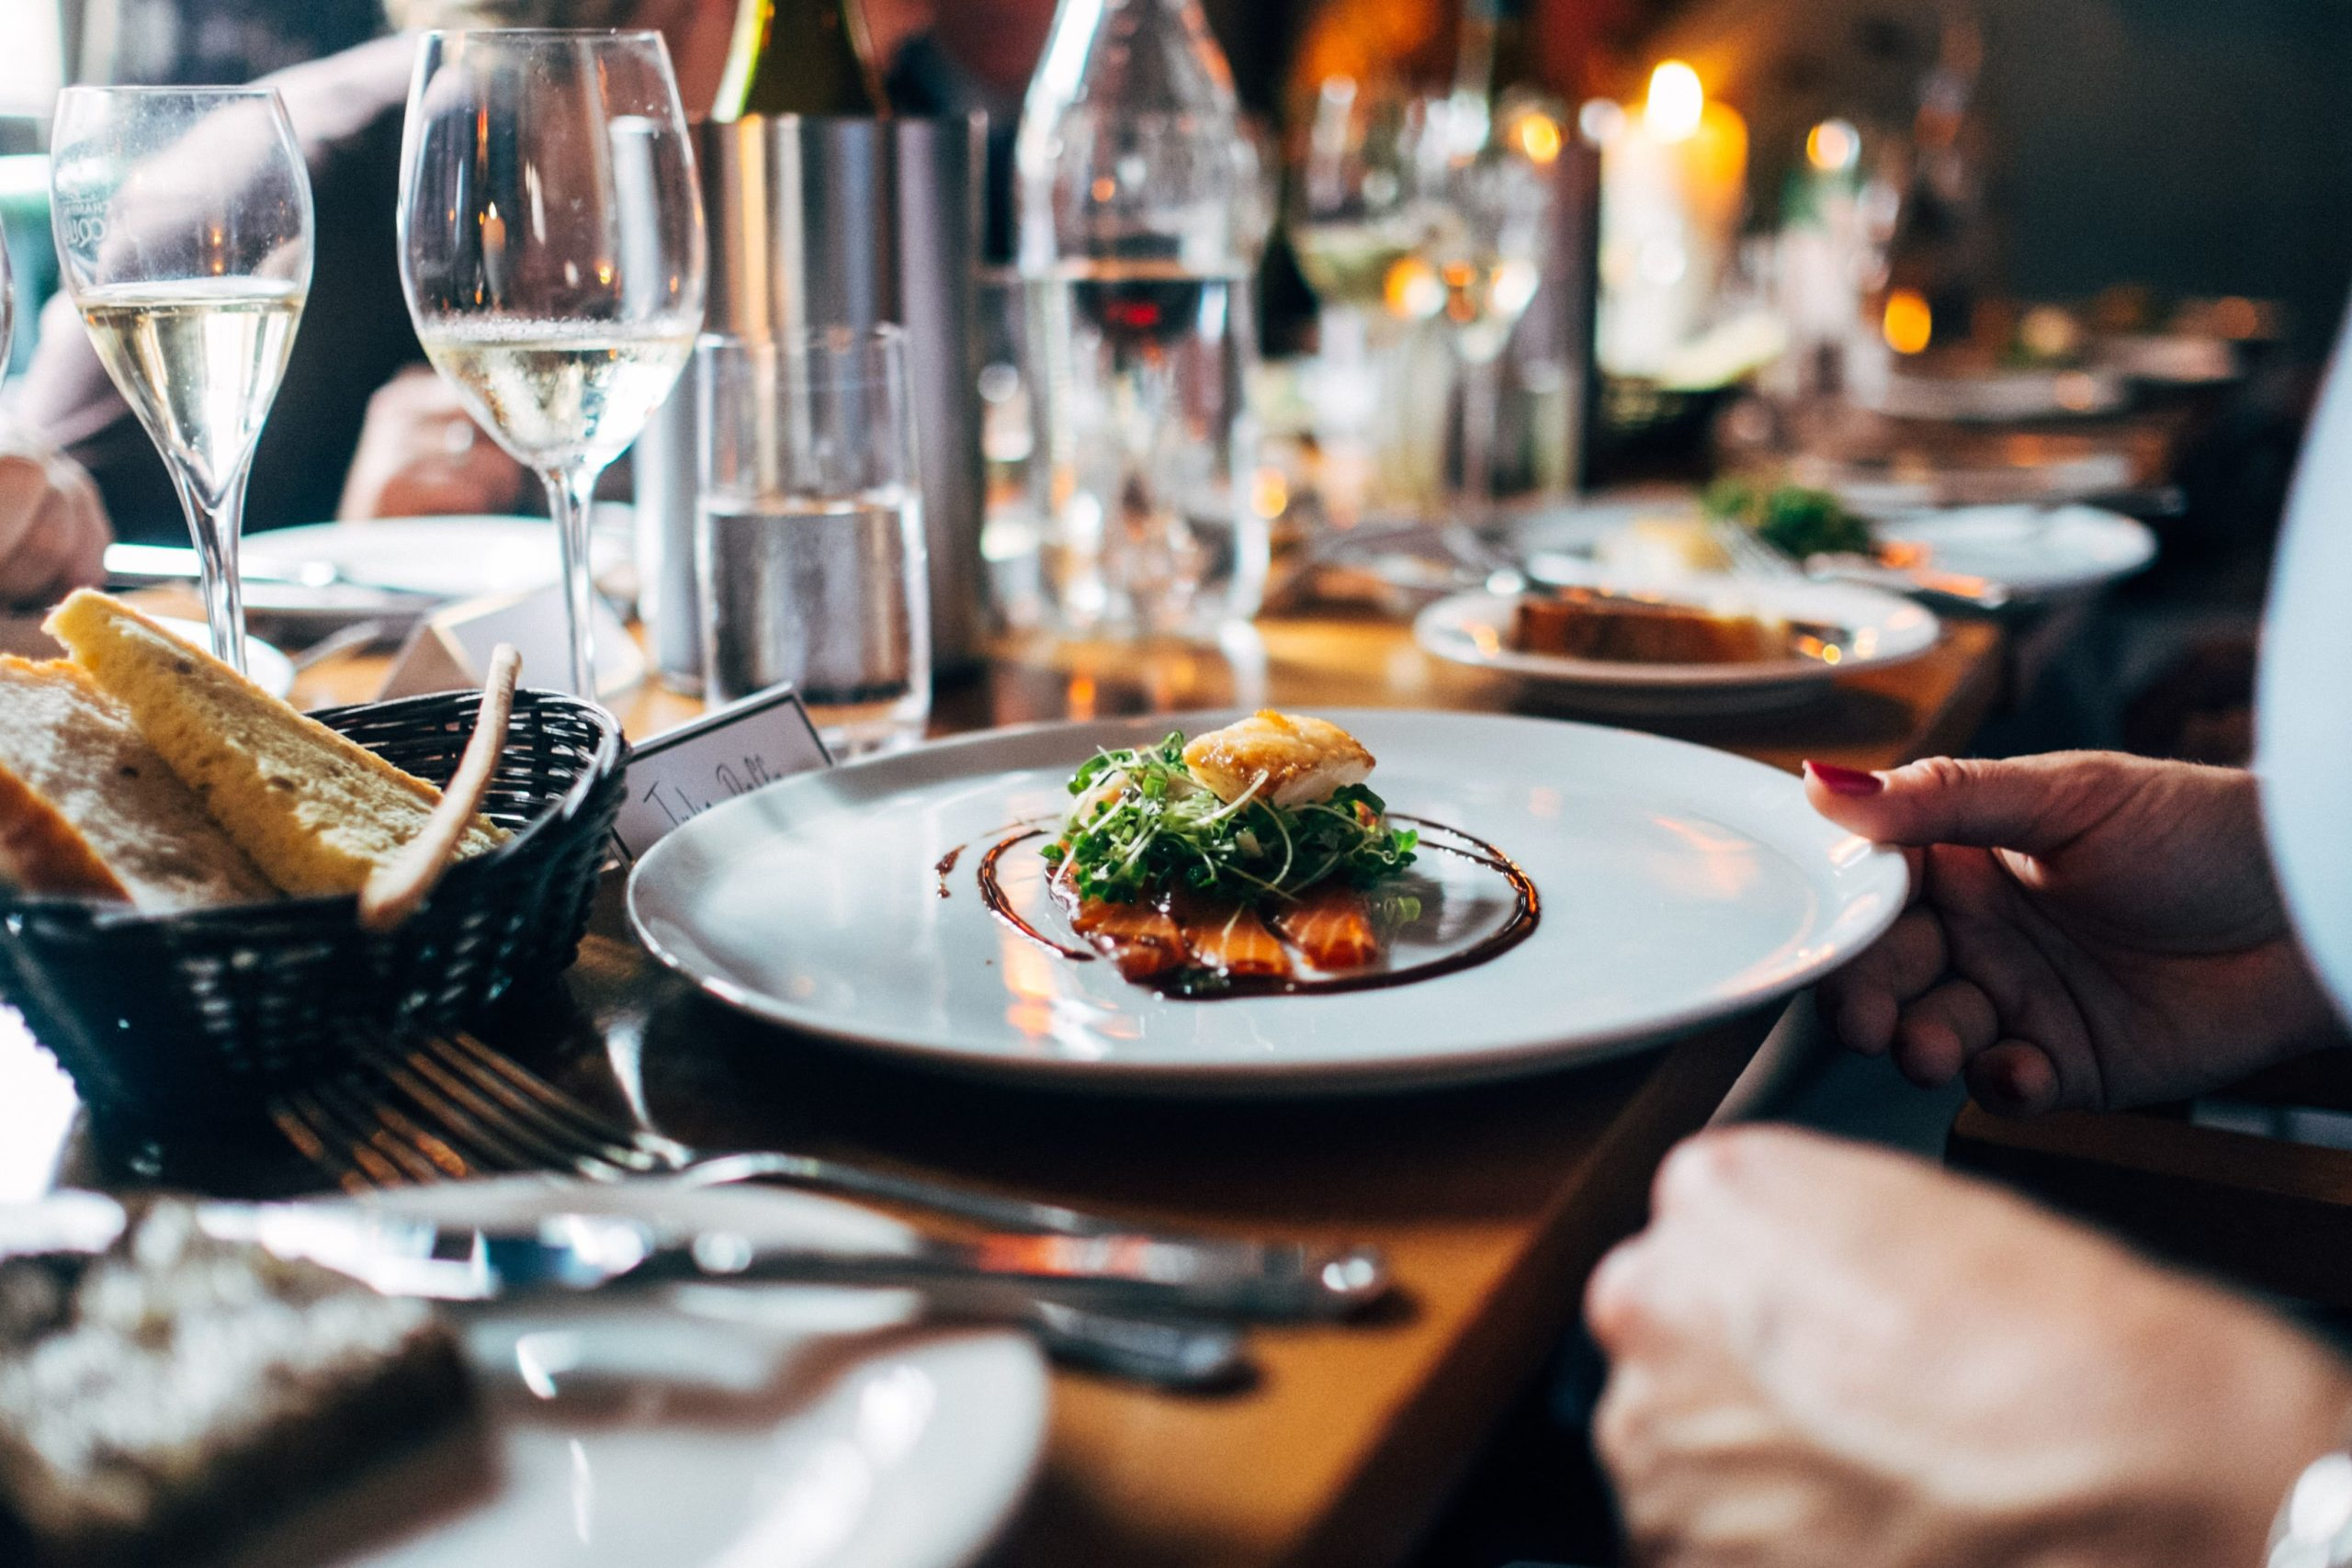 Simpson Associates partners with new client Côte Restaurant Group to manage their BI solution